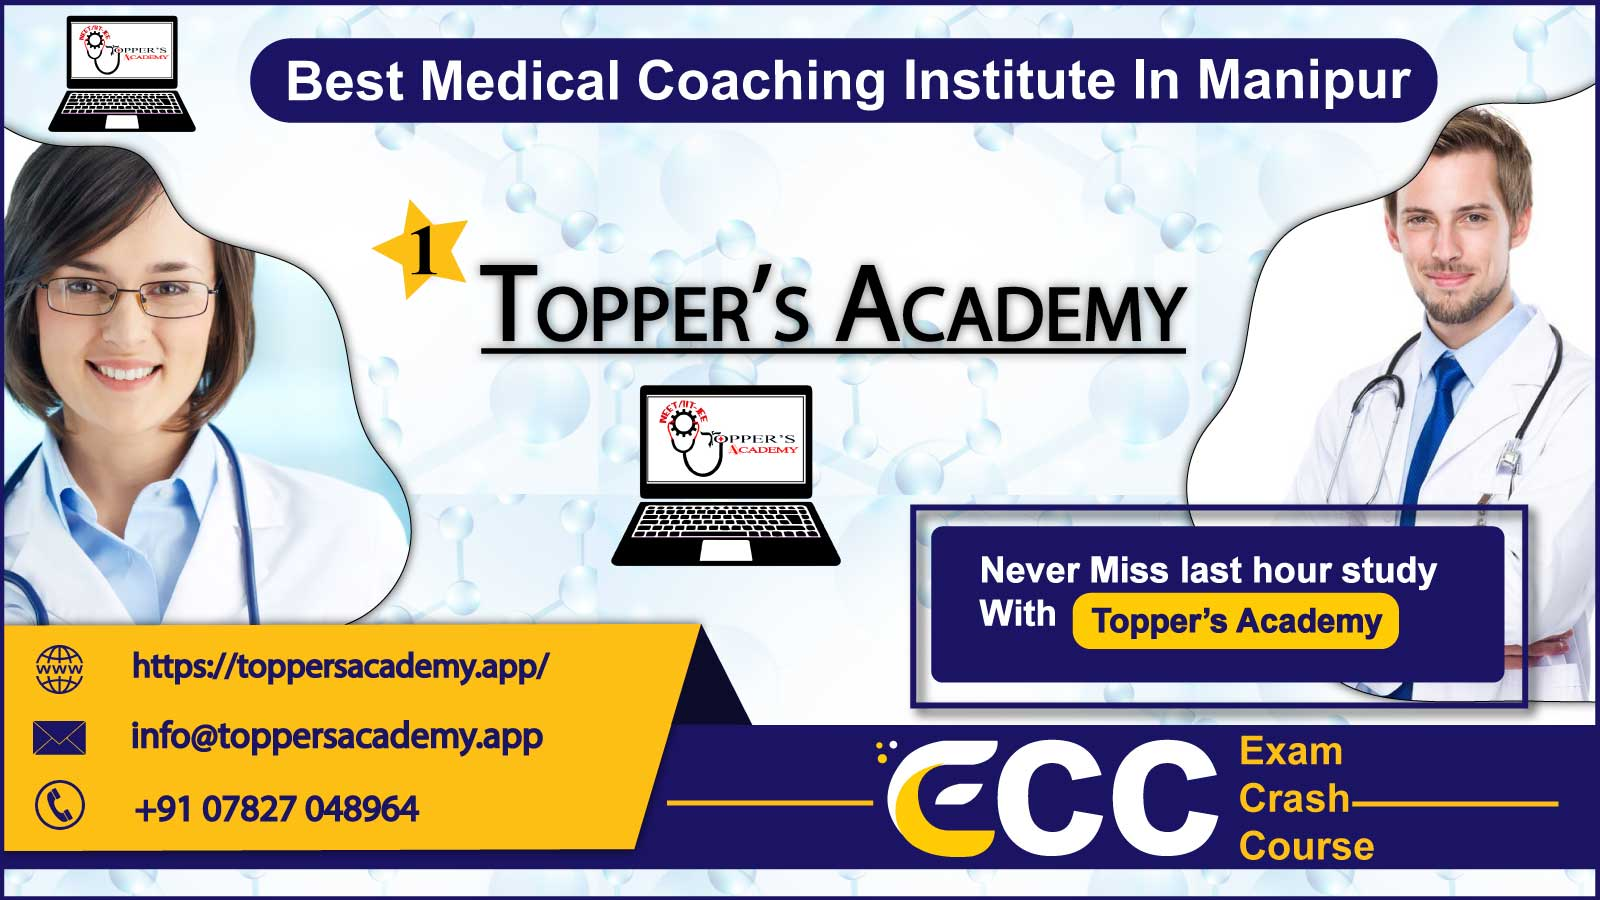 Toppers Academy NEET Coaching In Manipur